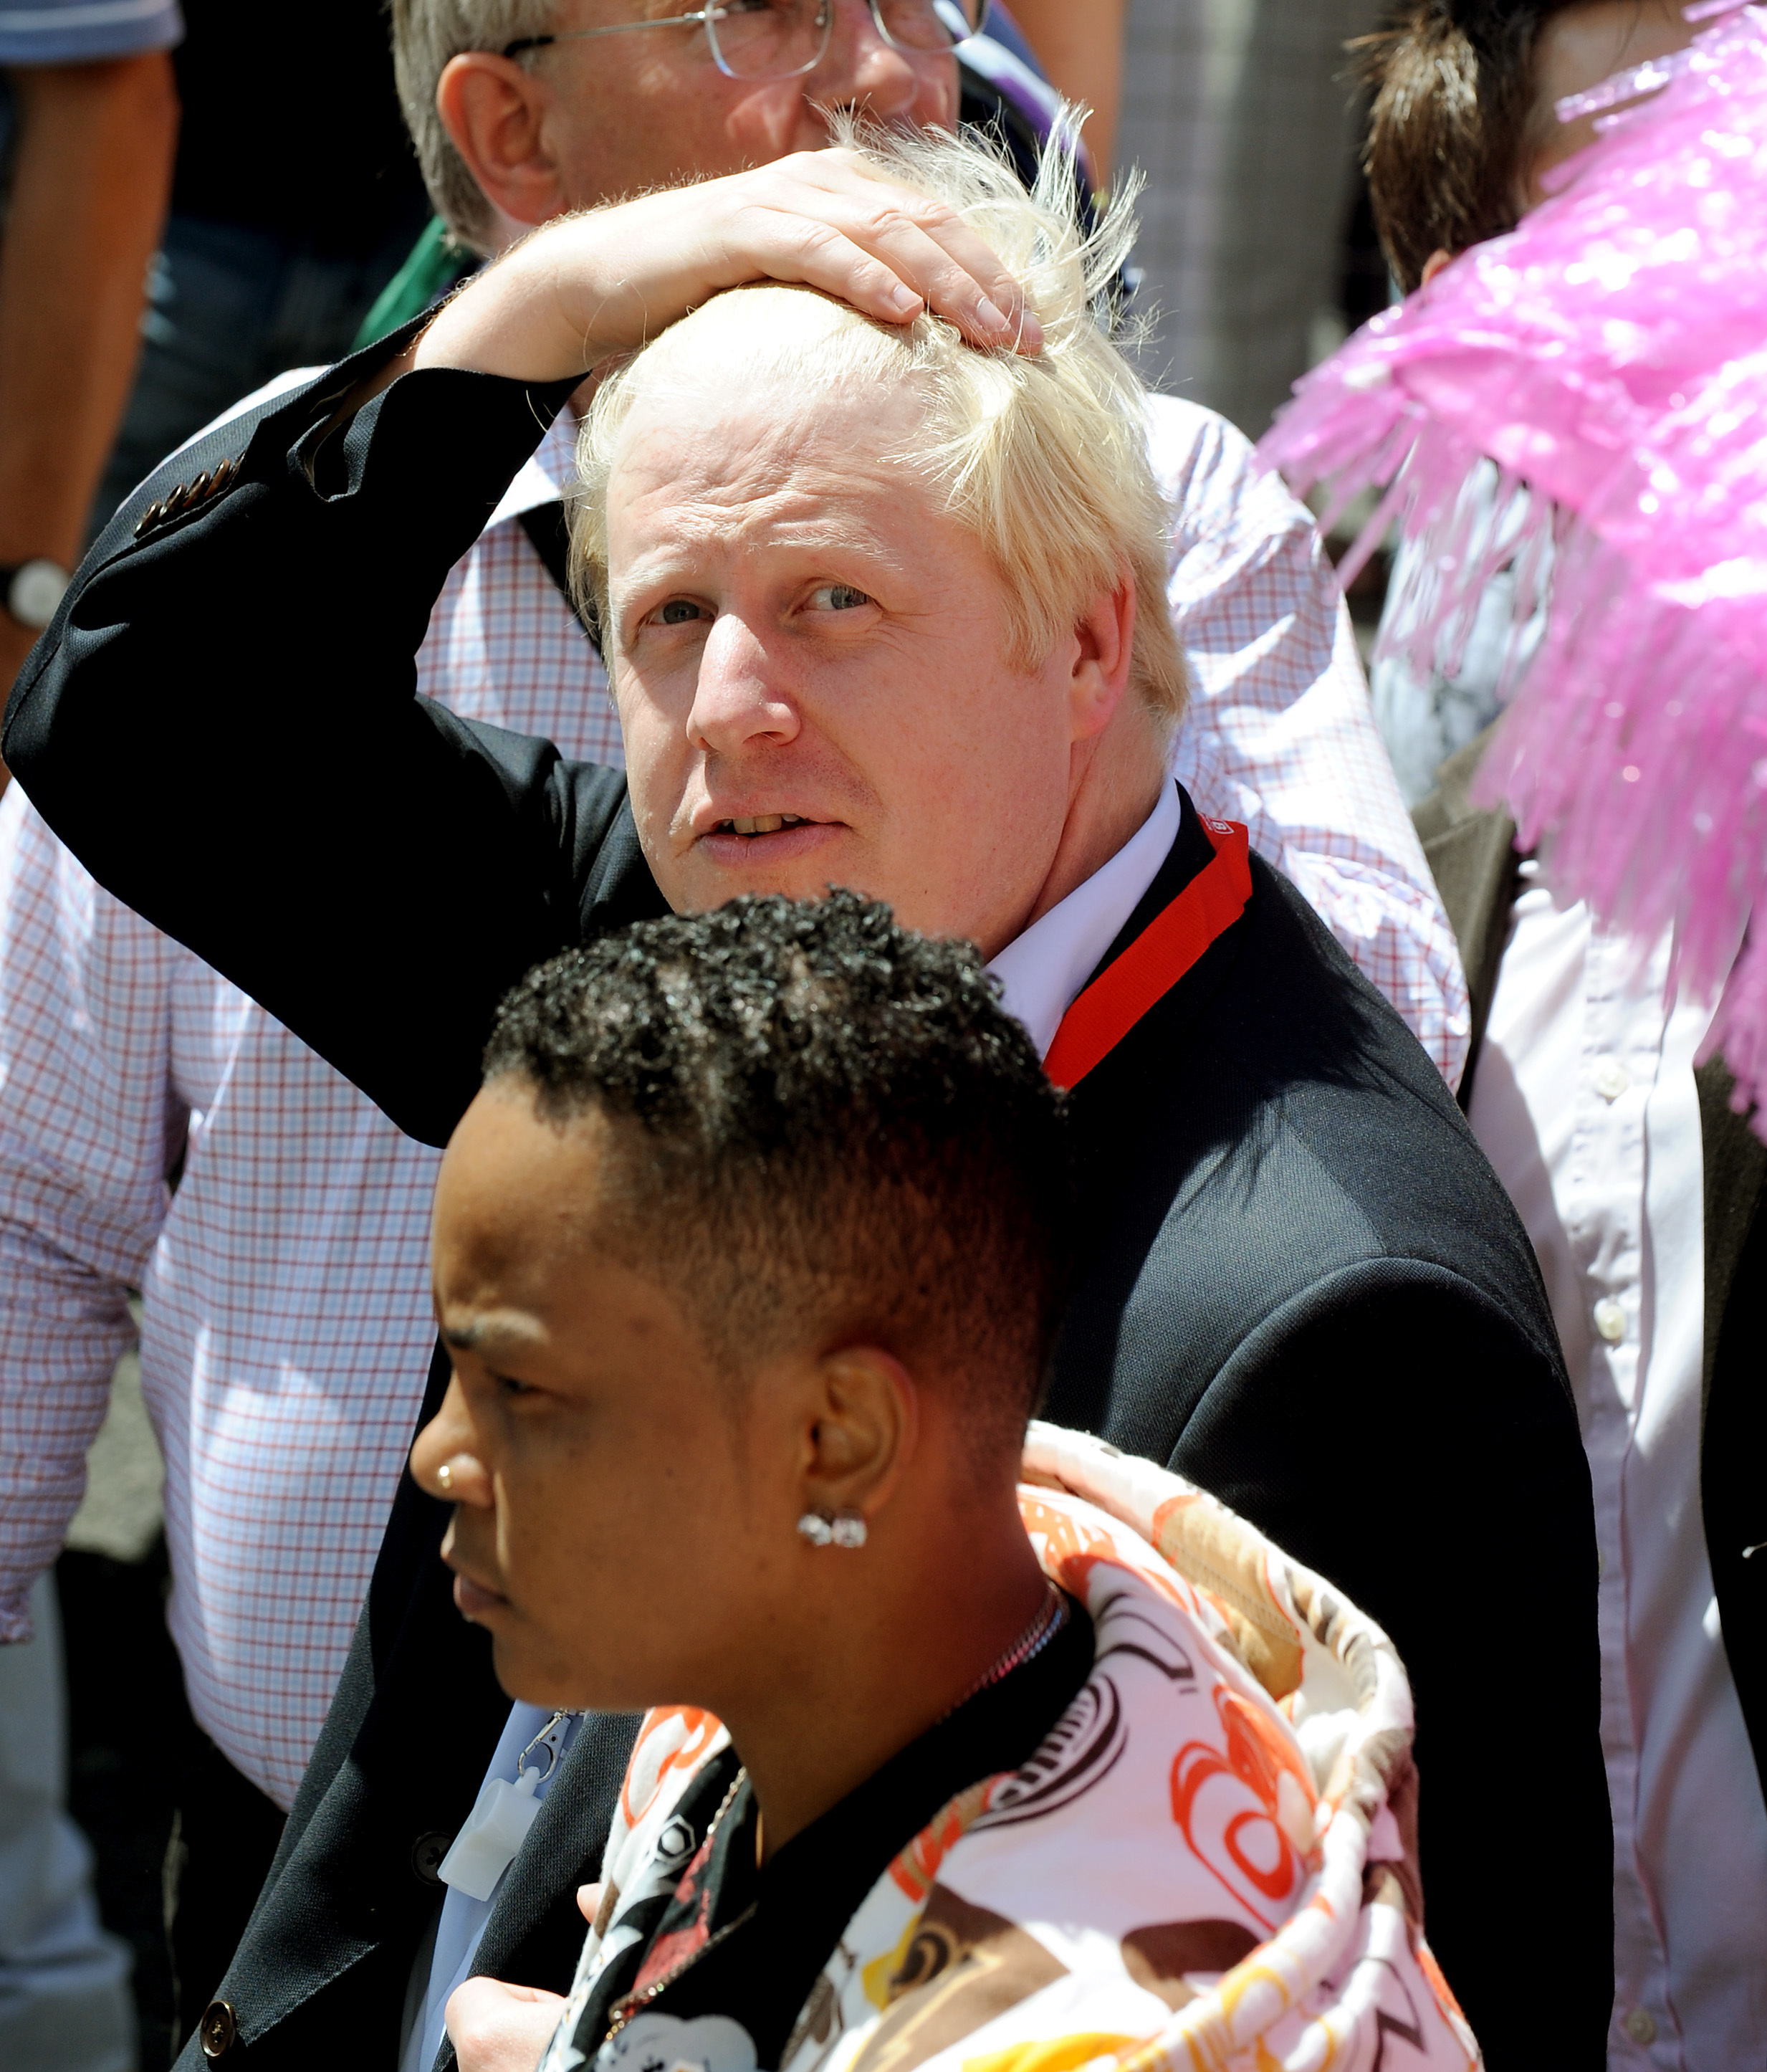 Boris Johnson leads Pride London 2008, the country's largest gay and lesbian carnival